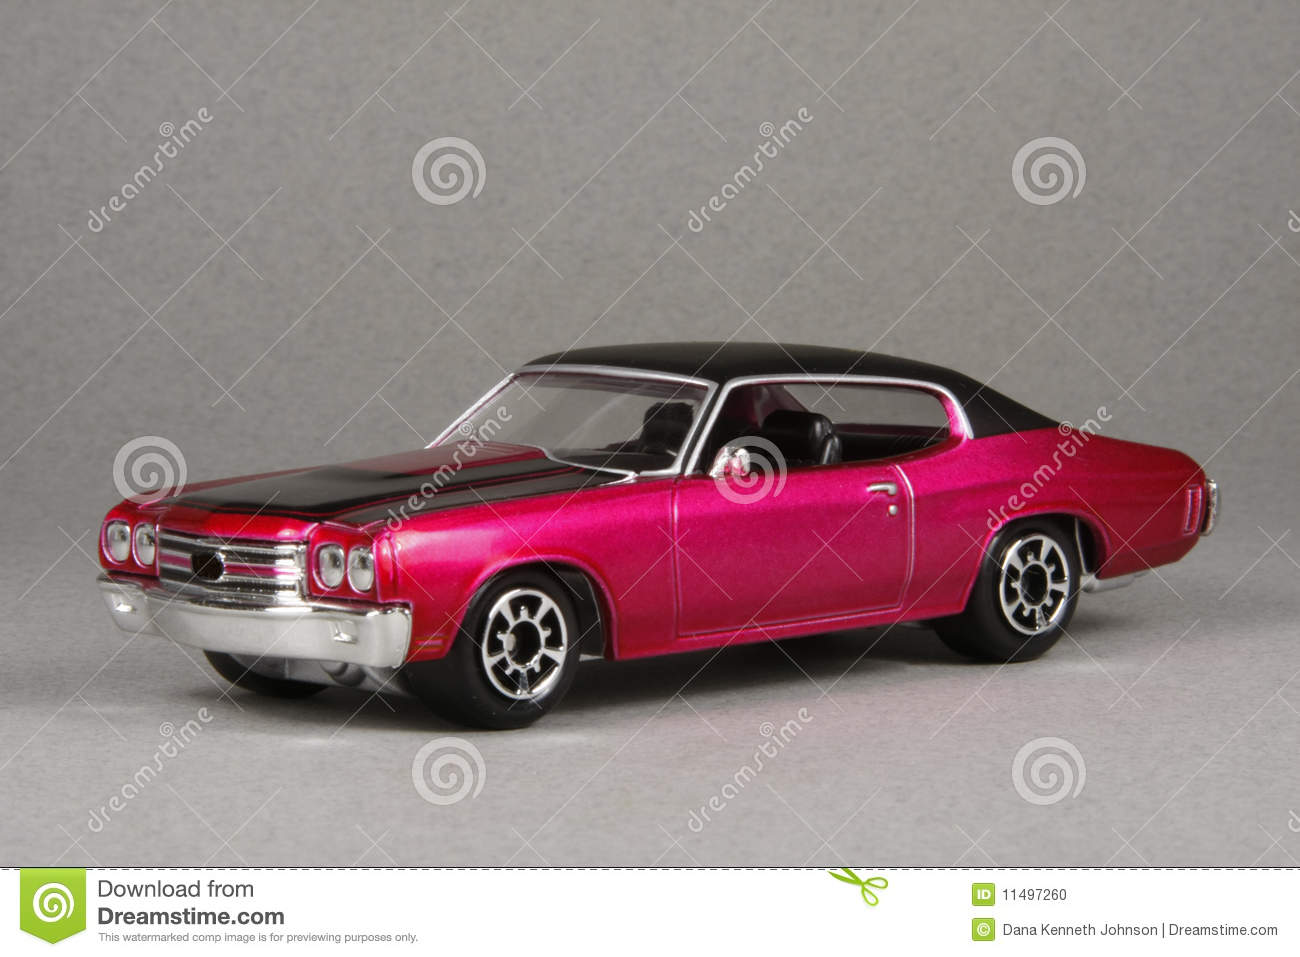 Chevrolet Chevelle Ss454 1970 Stock Photo   Image  11497260